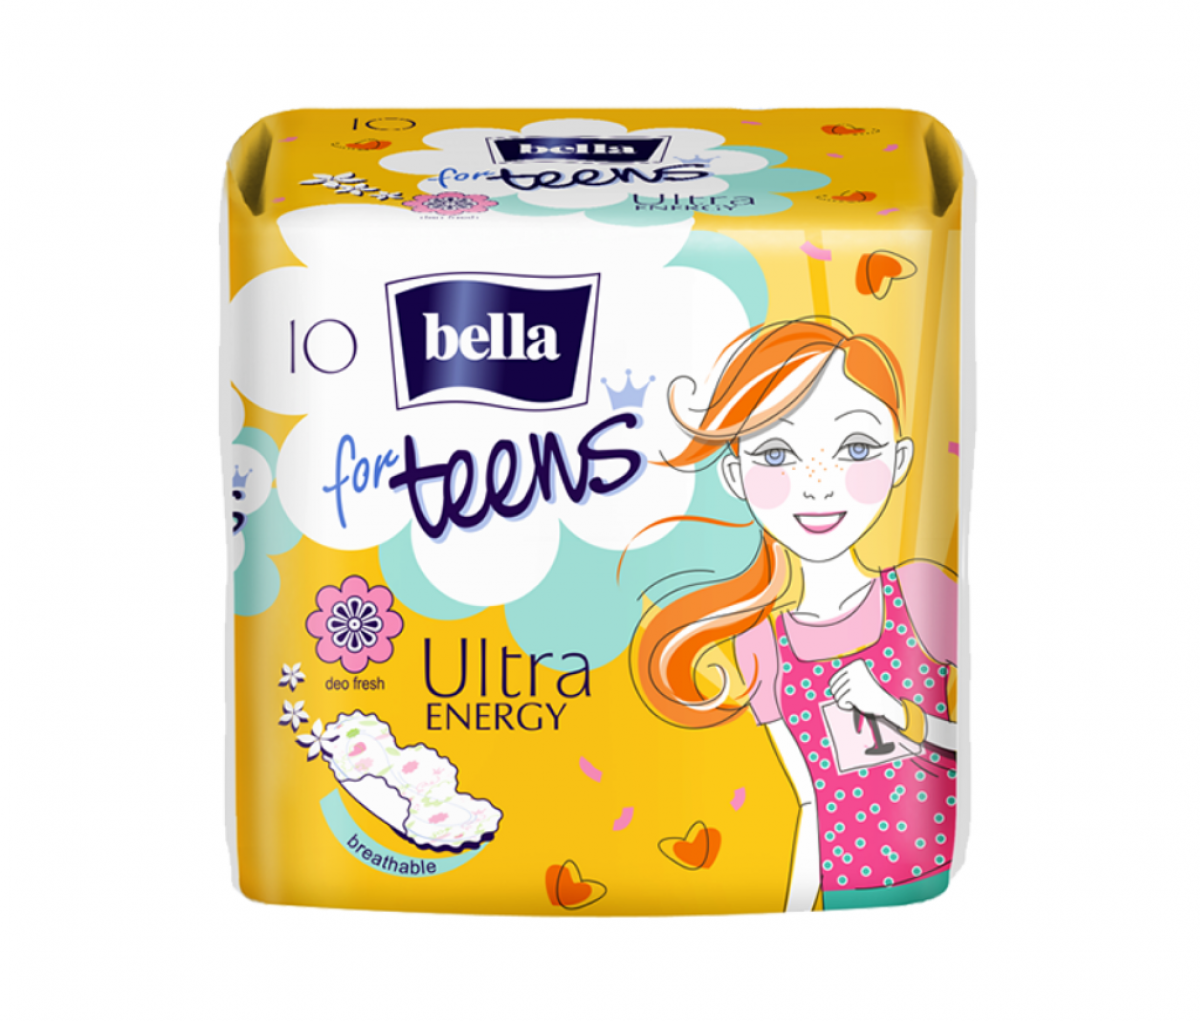 TZMO Bella for Teens Ultra Energy Sanitary Pads A10